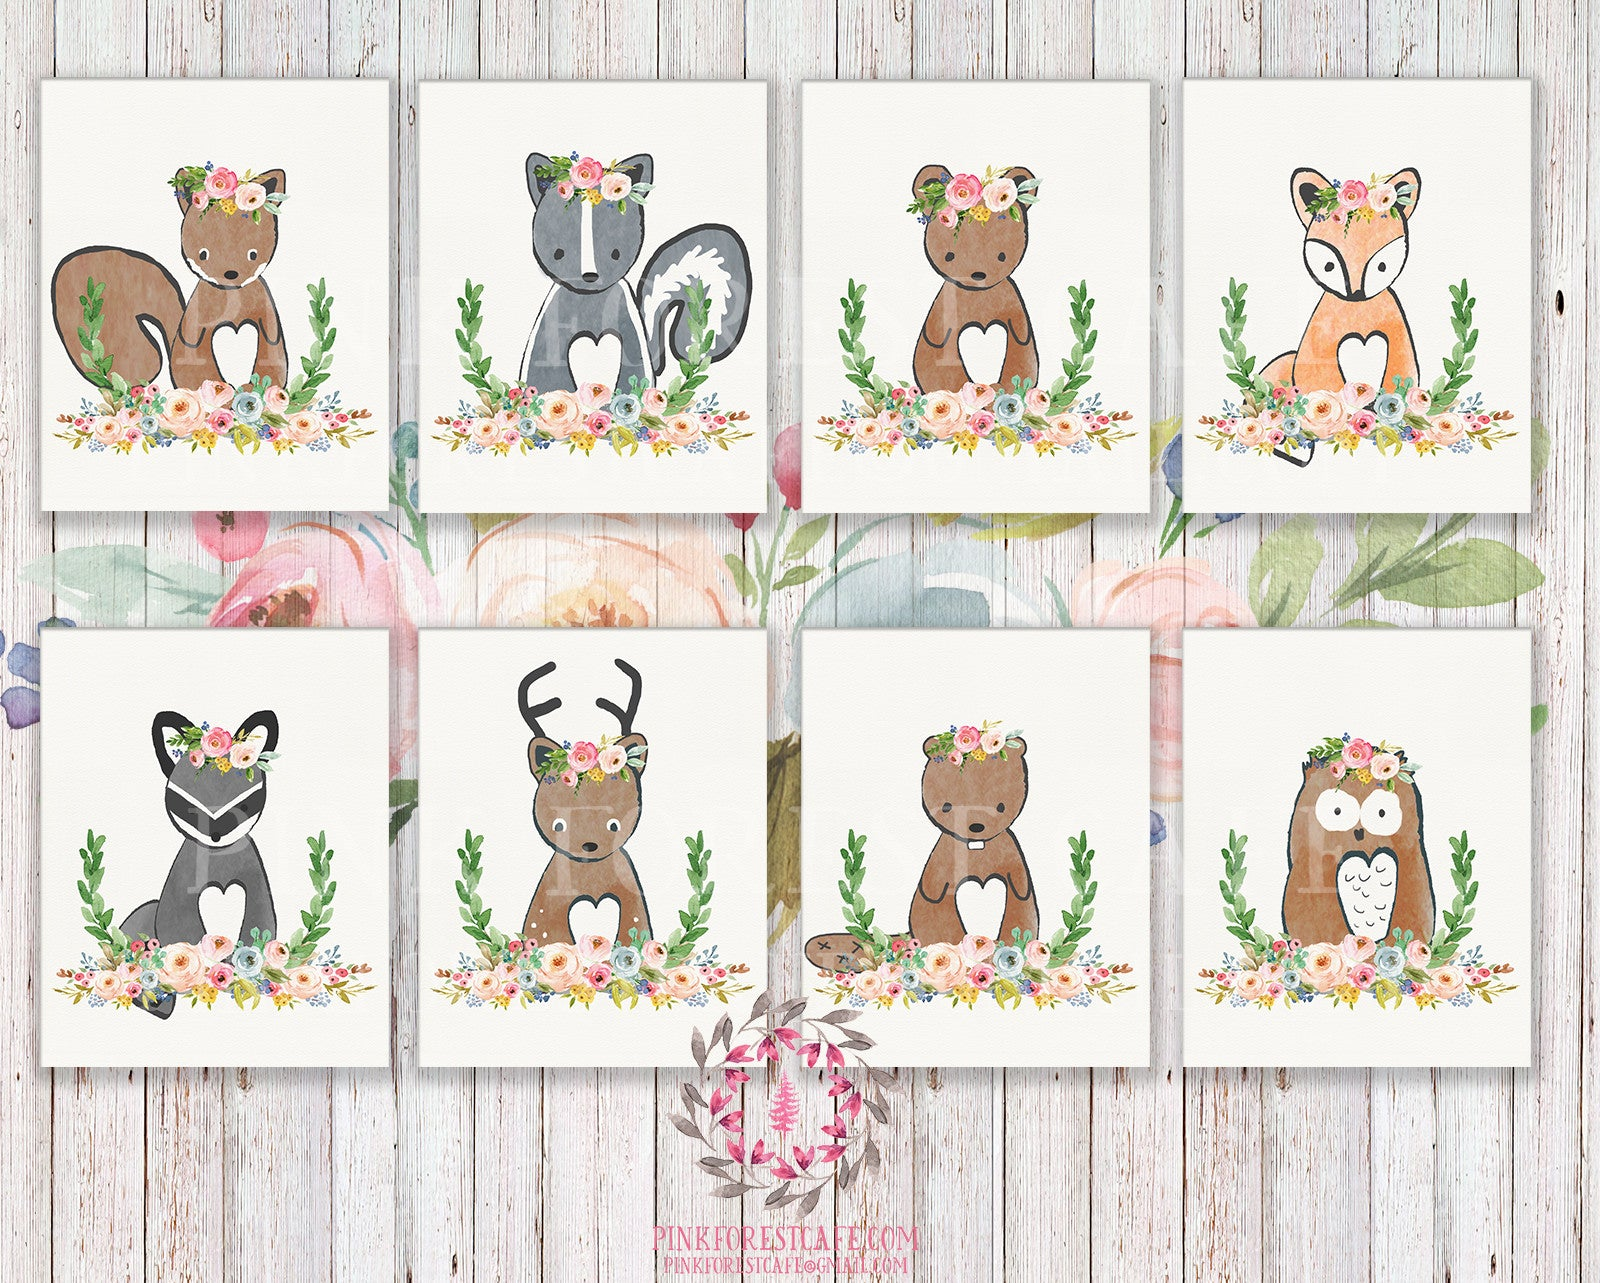 Set Lot of 8 Woodland Boho Bohemian Floral Nursery Baby Girl Room Prints Printable Print Wall Art Decor